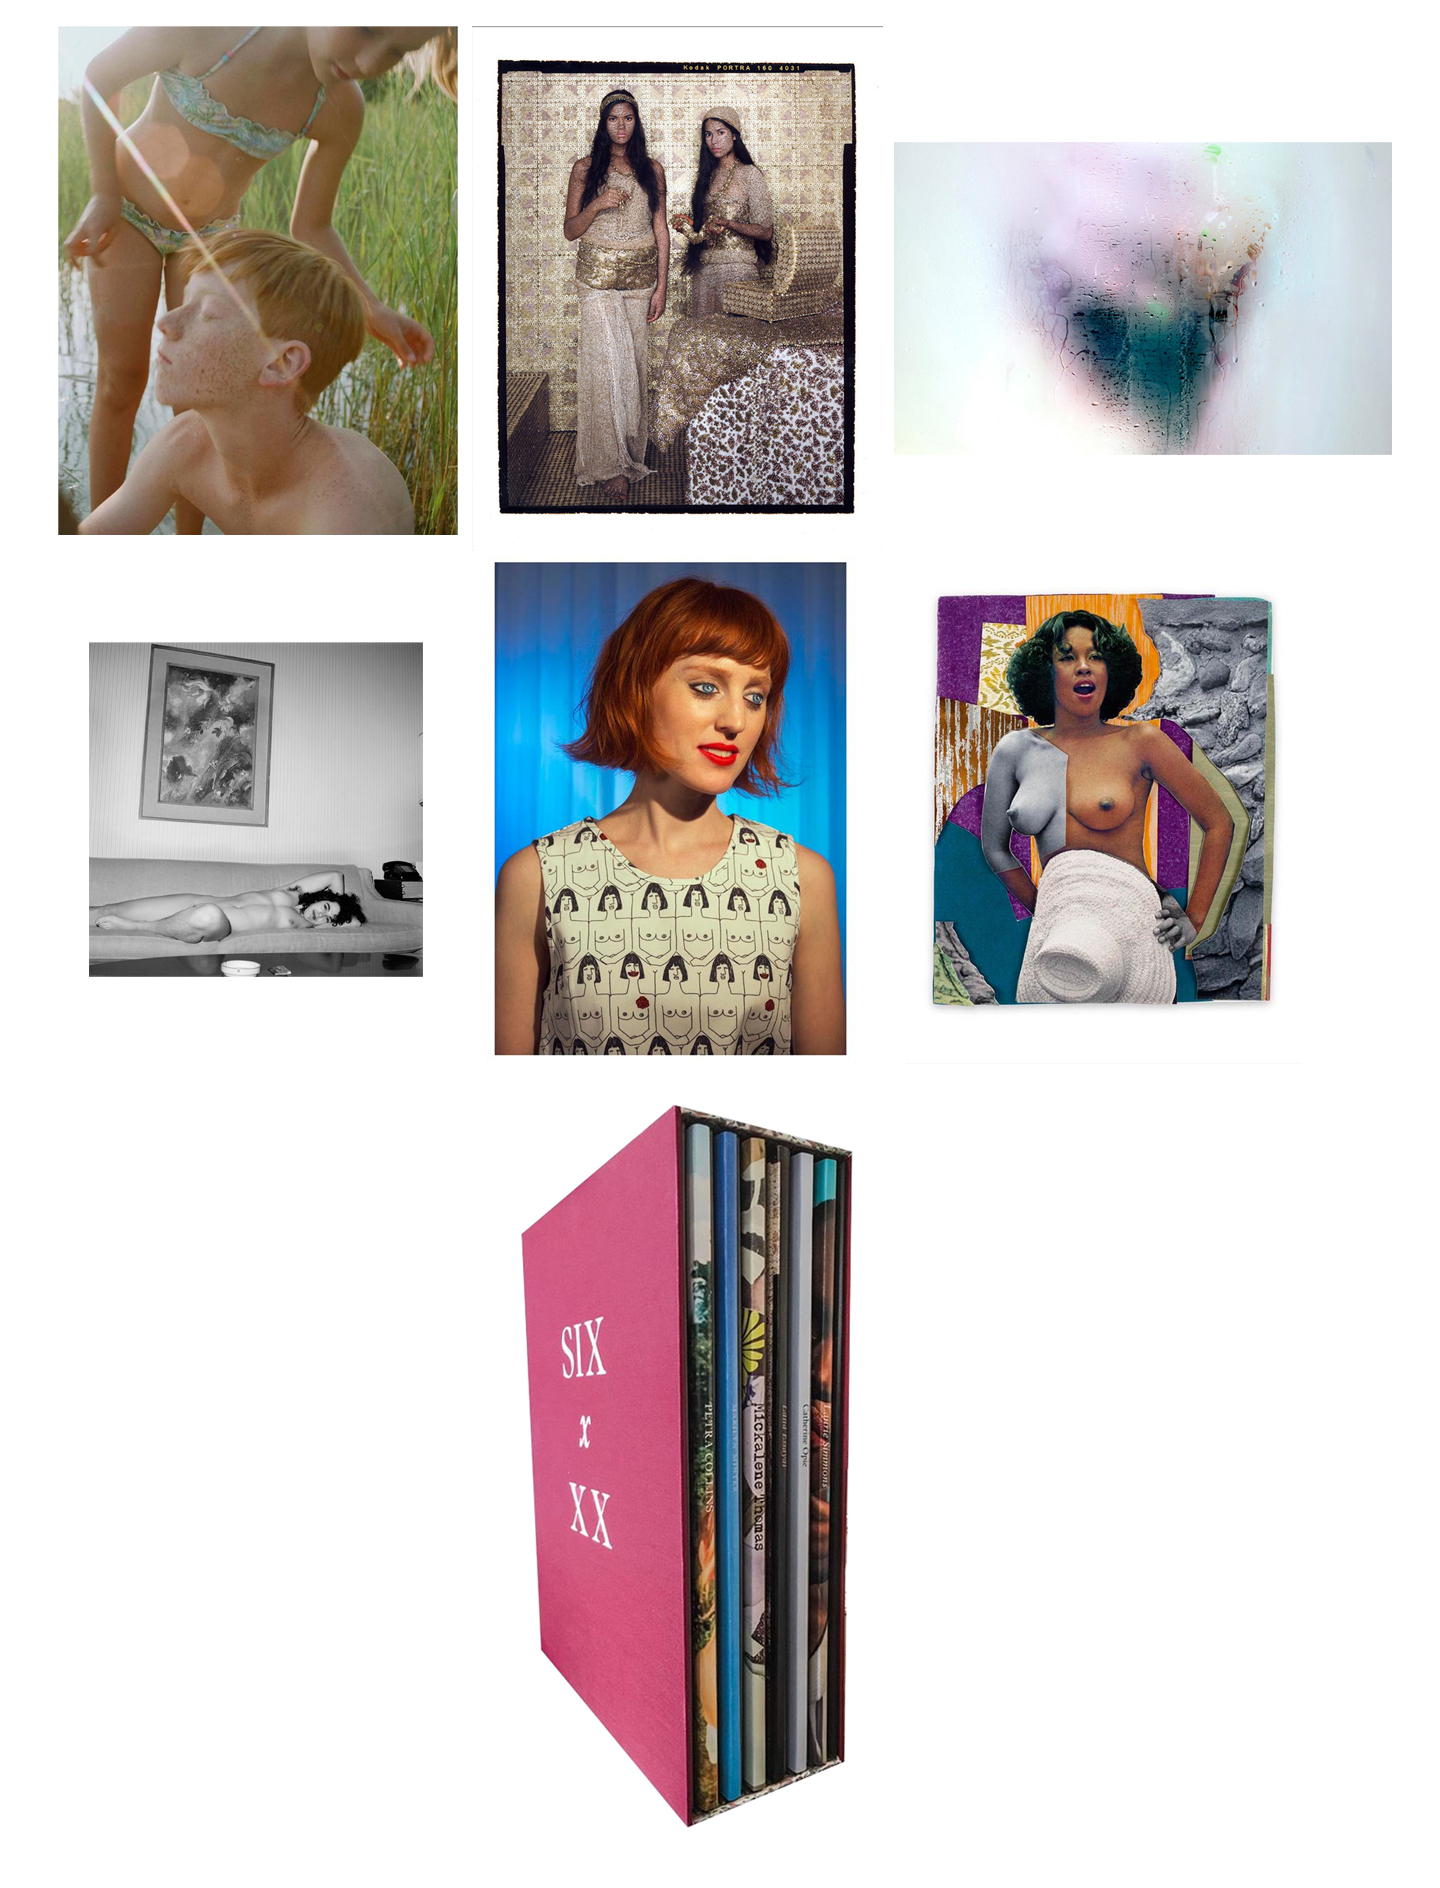 Nazraeli Press Six by XX (6 x XX), Limited Edition (with 6 Prints): Laurie Simmons: How We See; Catherine Opie: Girlfriends; Marilyn Minter: Cunt; Mickalene Thomas: Black is Beautiful; Lalla Essaydi: Lalla Essaydi; Petra Collins: Kamasz Nyar